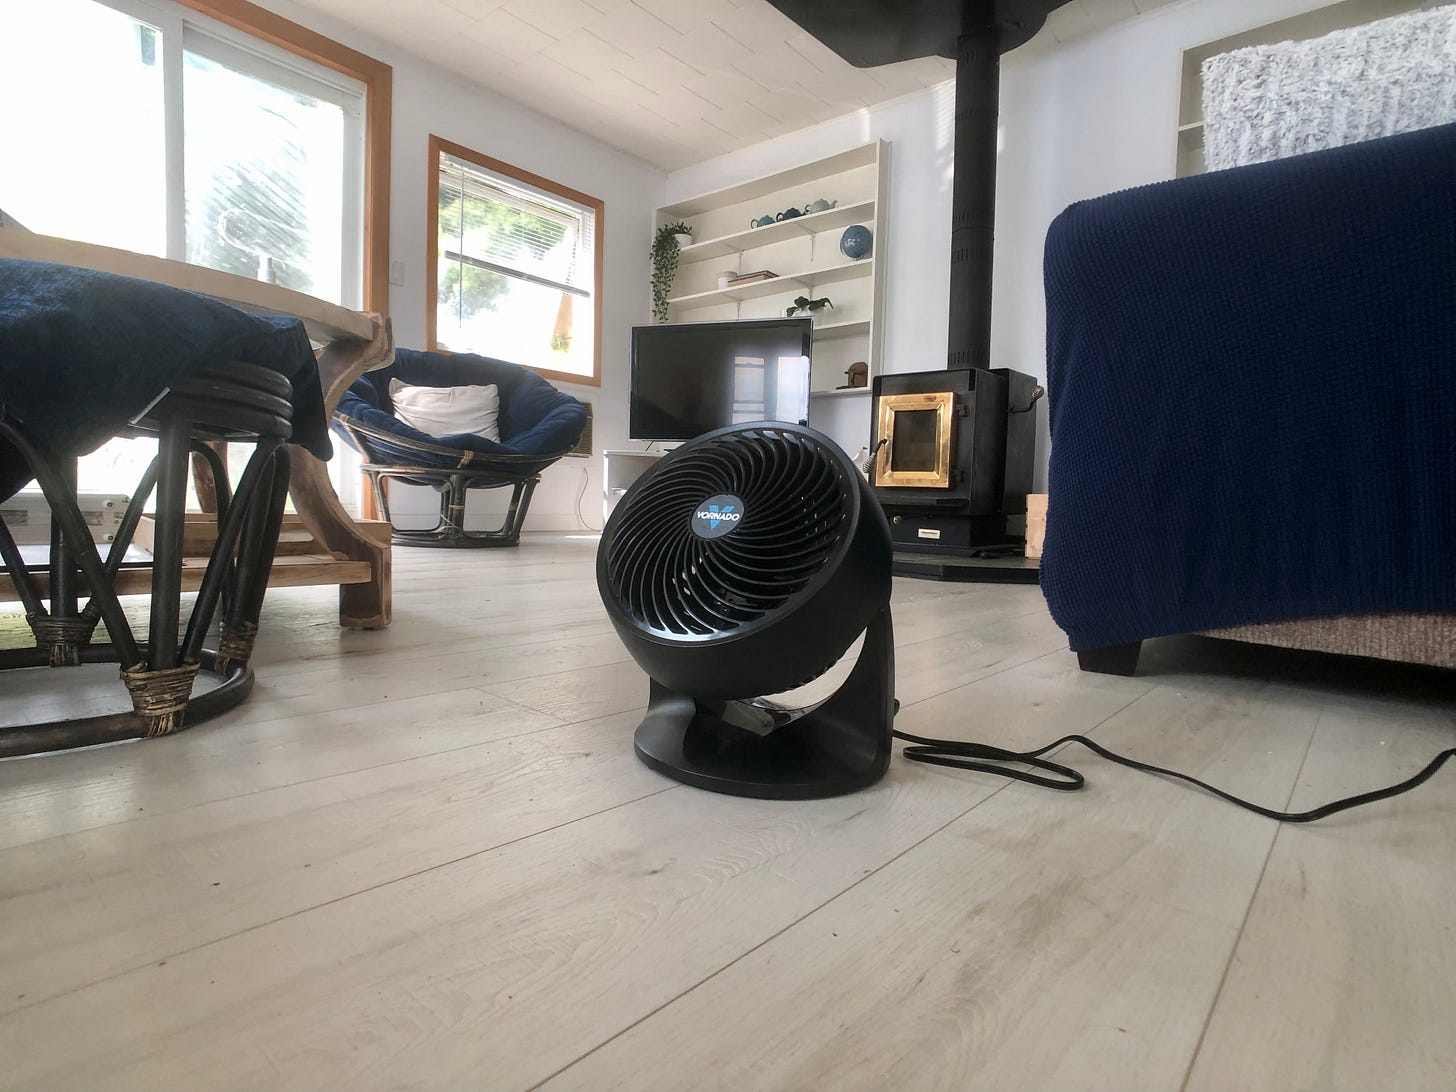 An electric fan on the floor of a cottage living room.